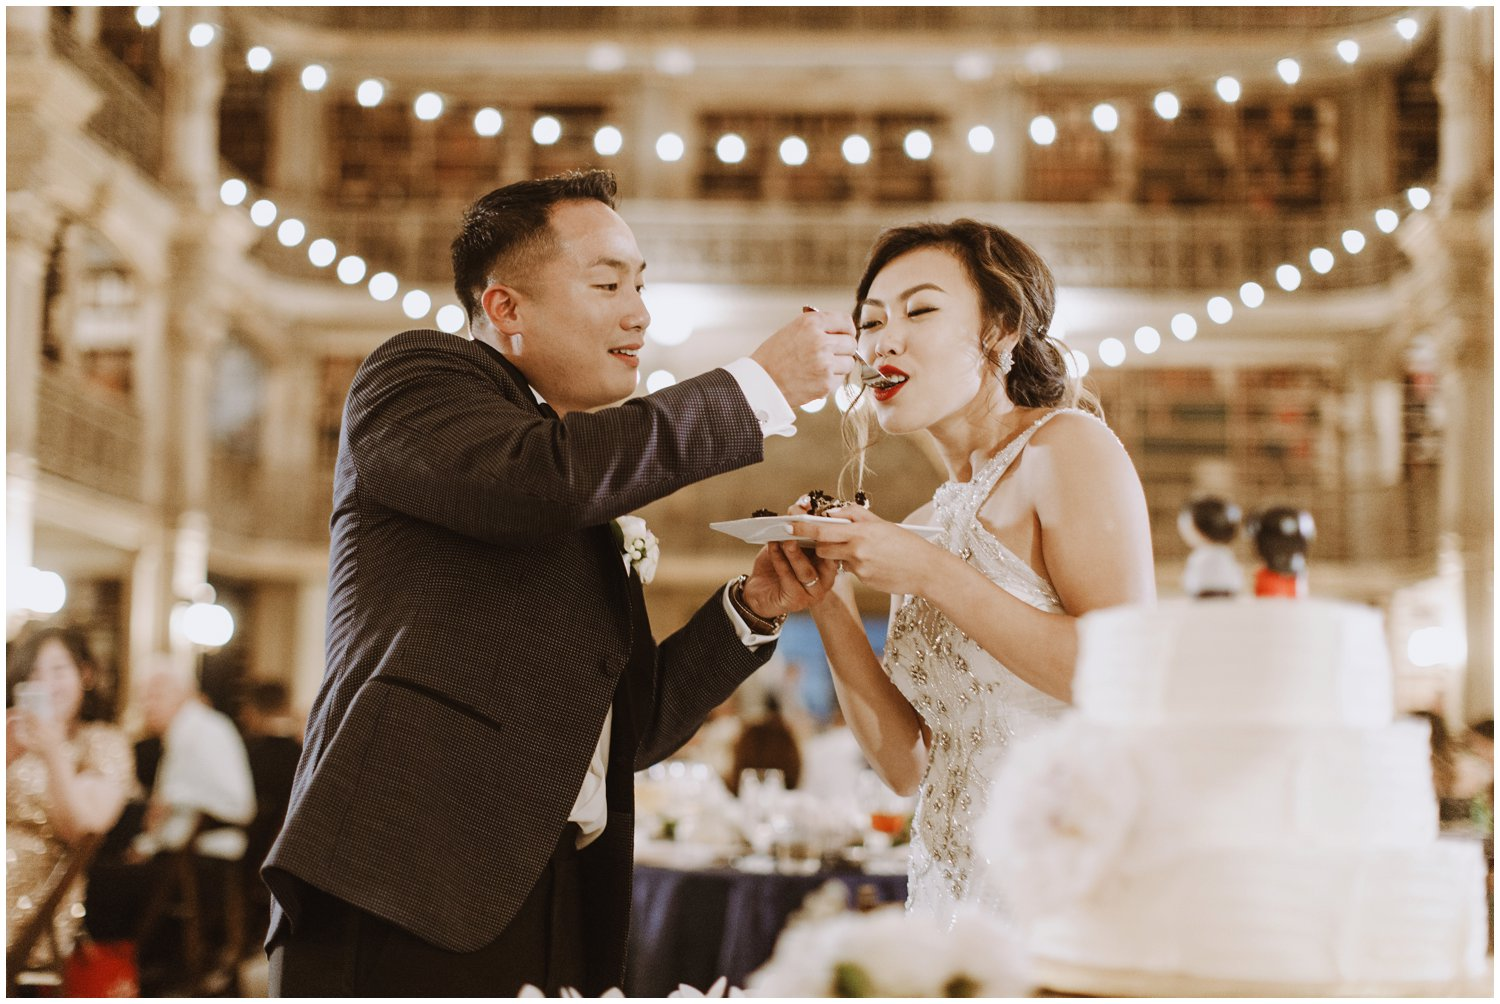 Peabody Library Wedding reception | Baltimore Wedding Photographer | Art Deco Wedding Photography | Bride and Groom Cake Cutting | Kate Ann Photography